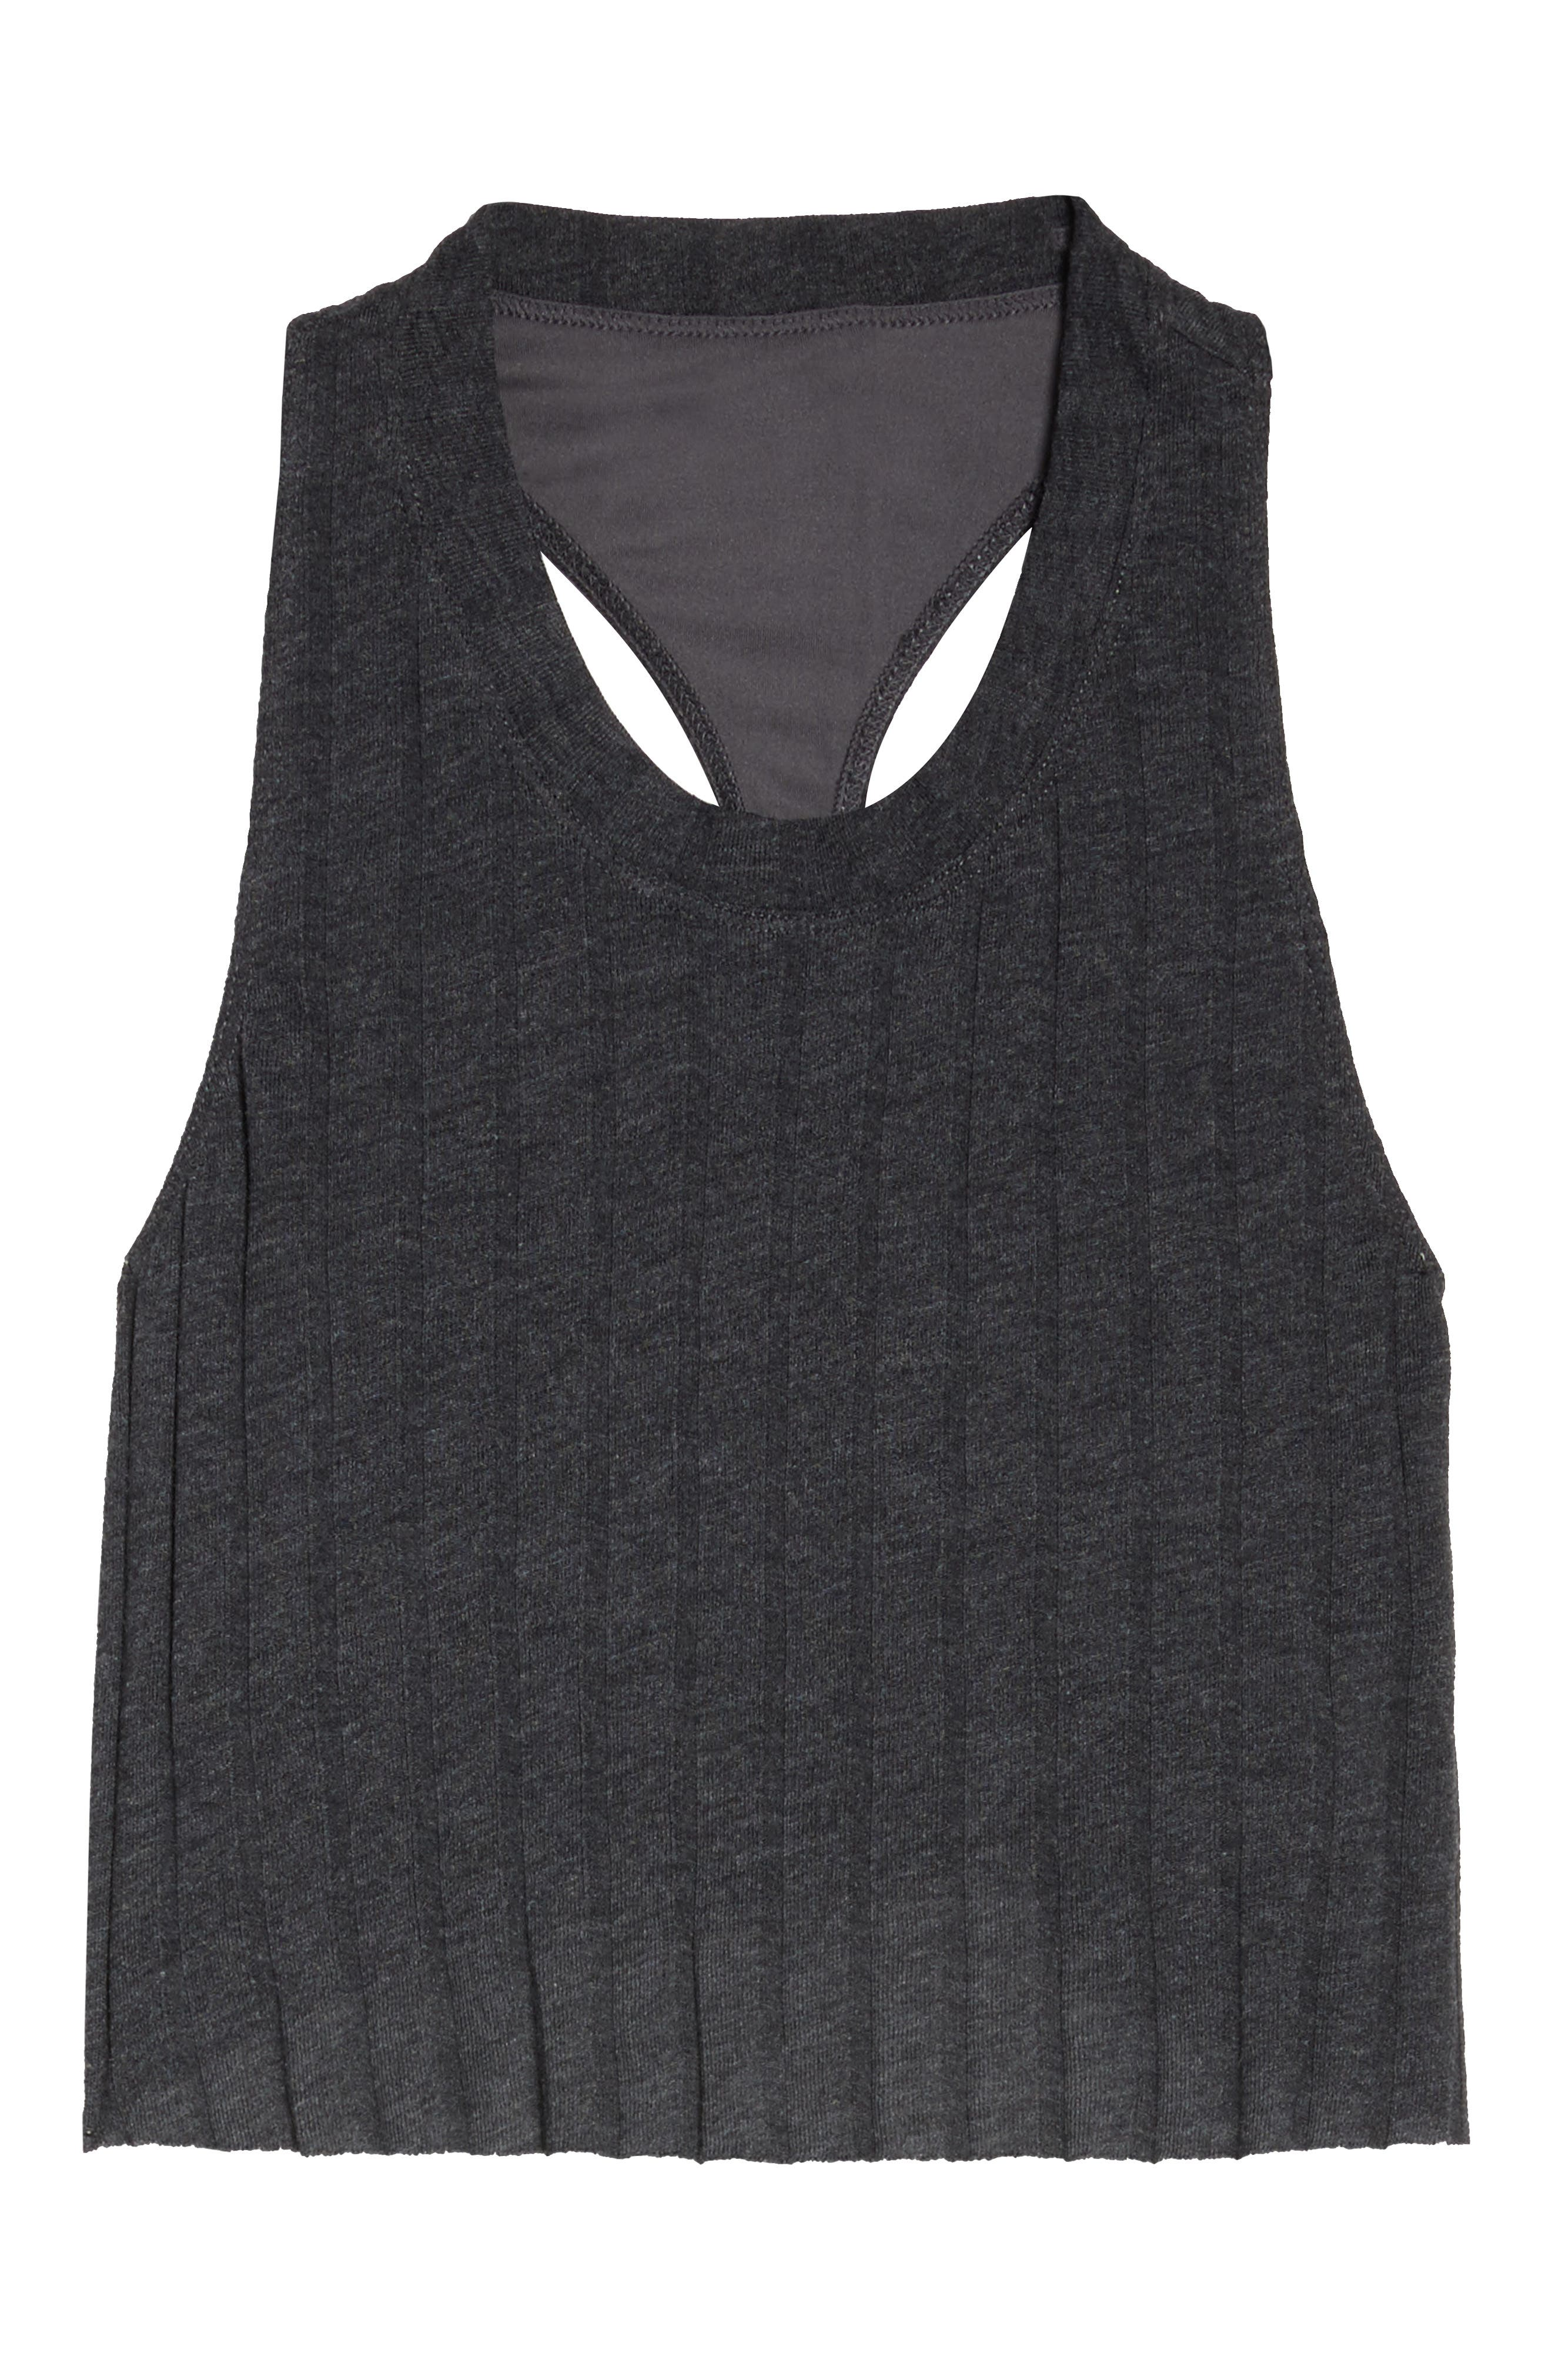 Ethereal Tank with Bra,                             Alternate thumbnail 12, color,